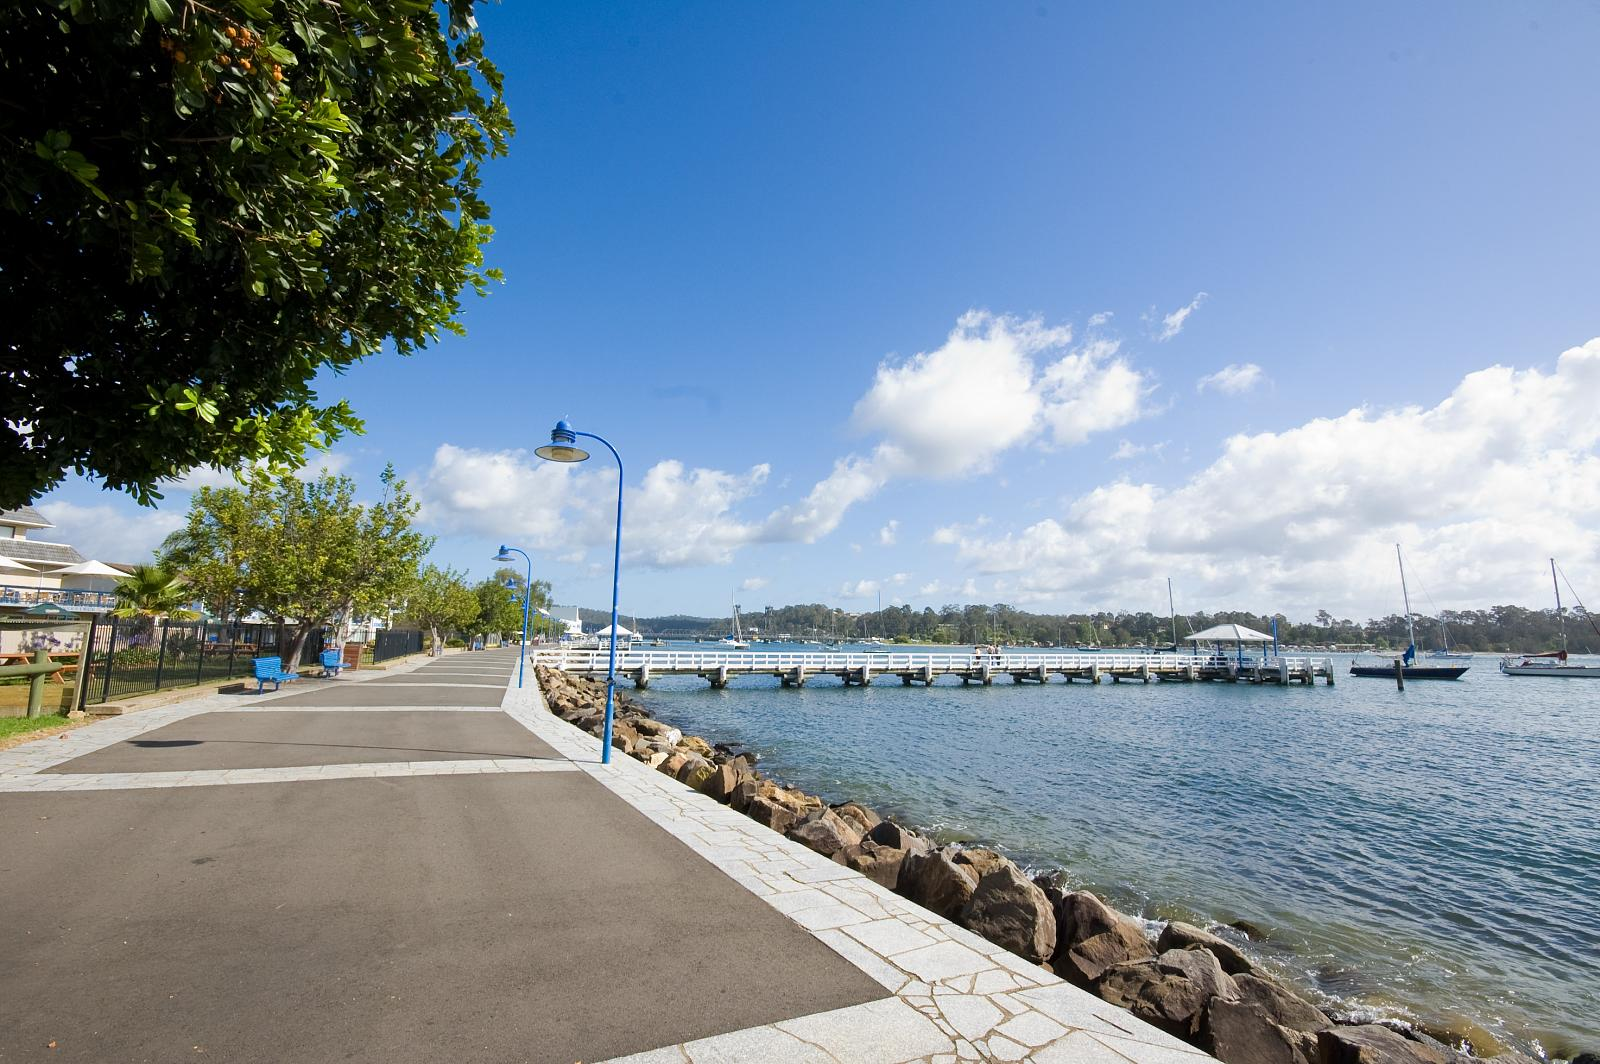 Batemans Bay in New South Wales